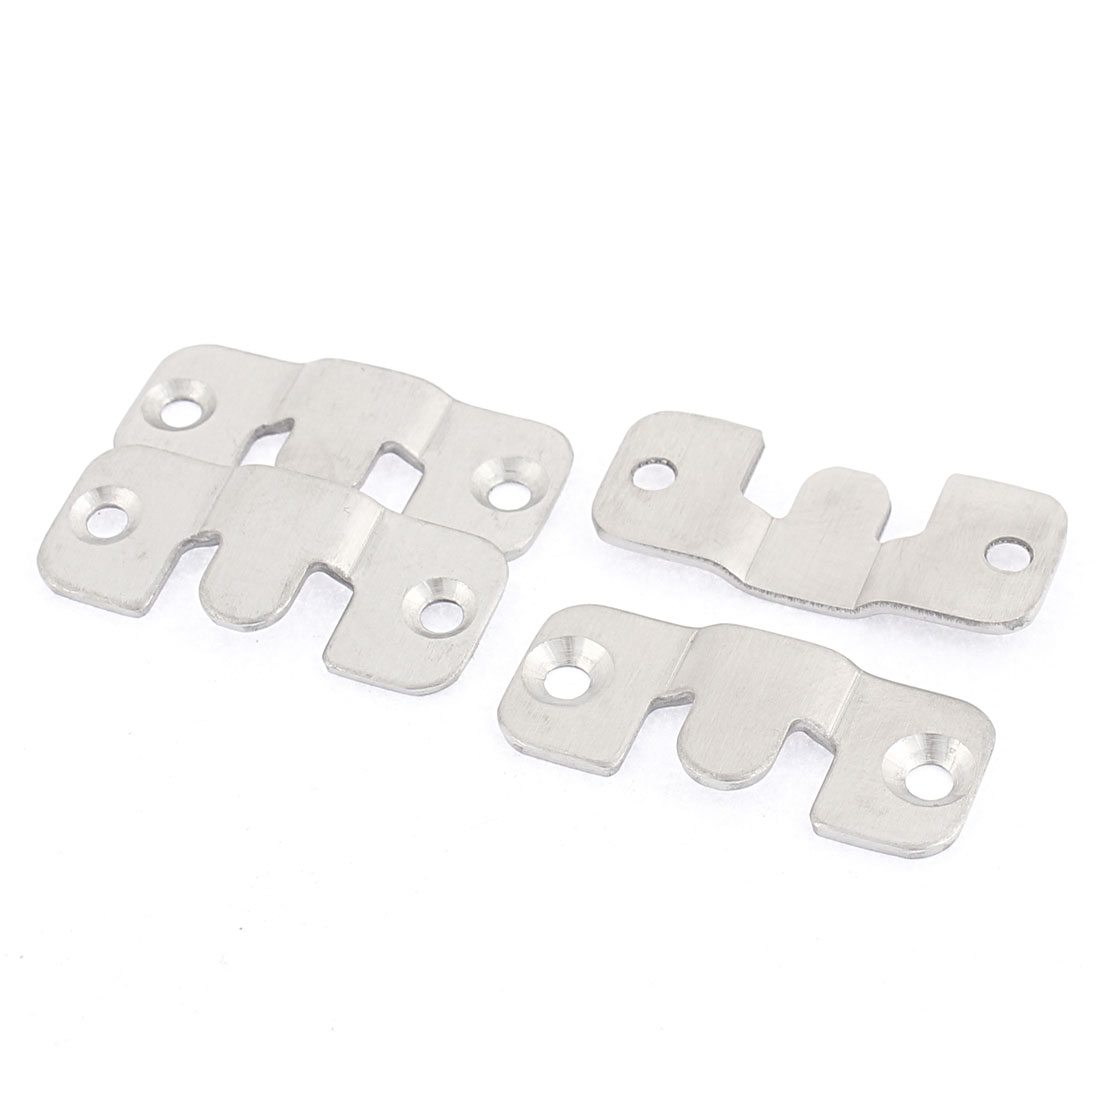 Furniture Photo Frame Stainless Steel Interlock Bracket Connector Hook 4 Pcs